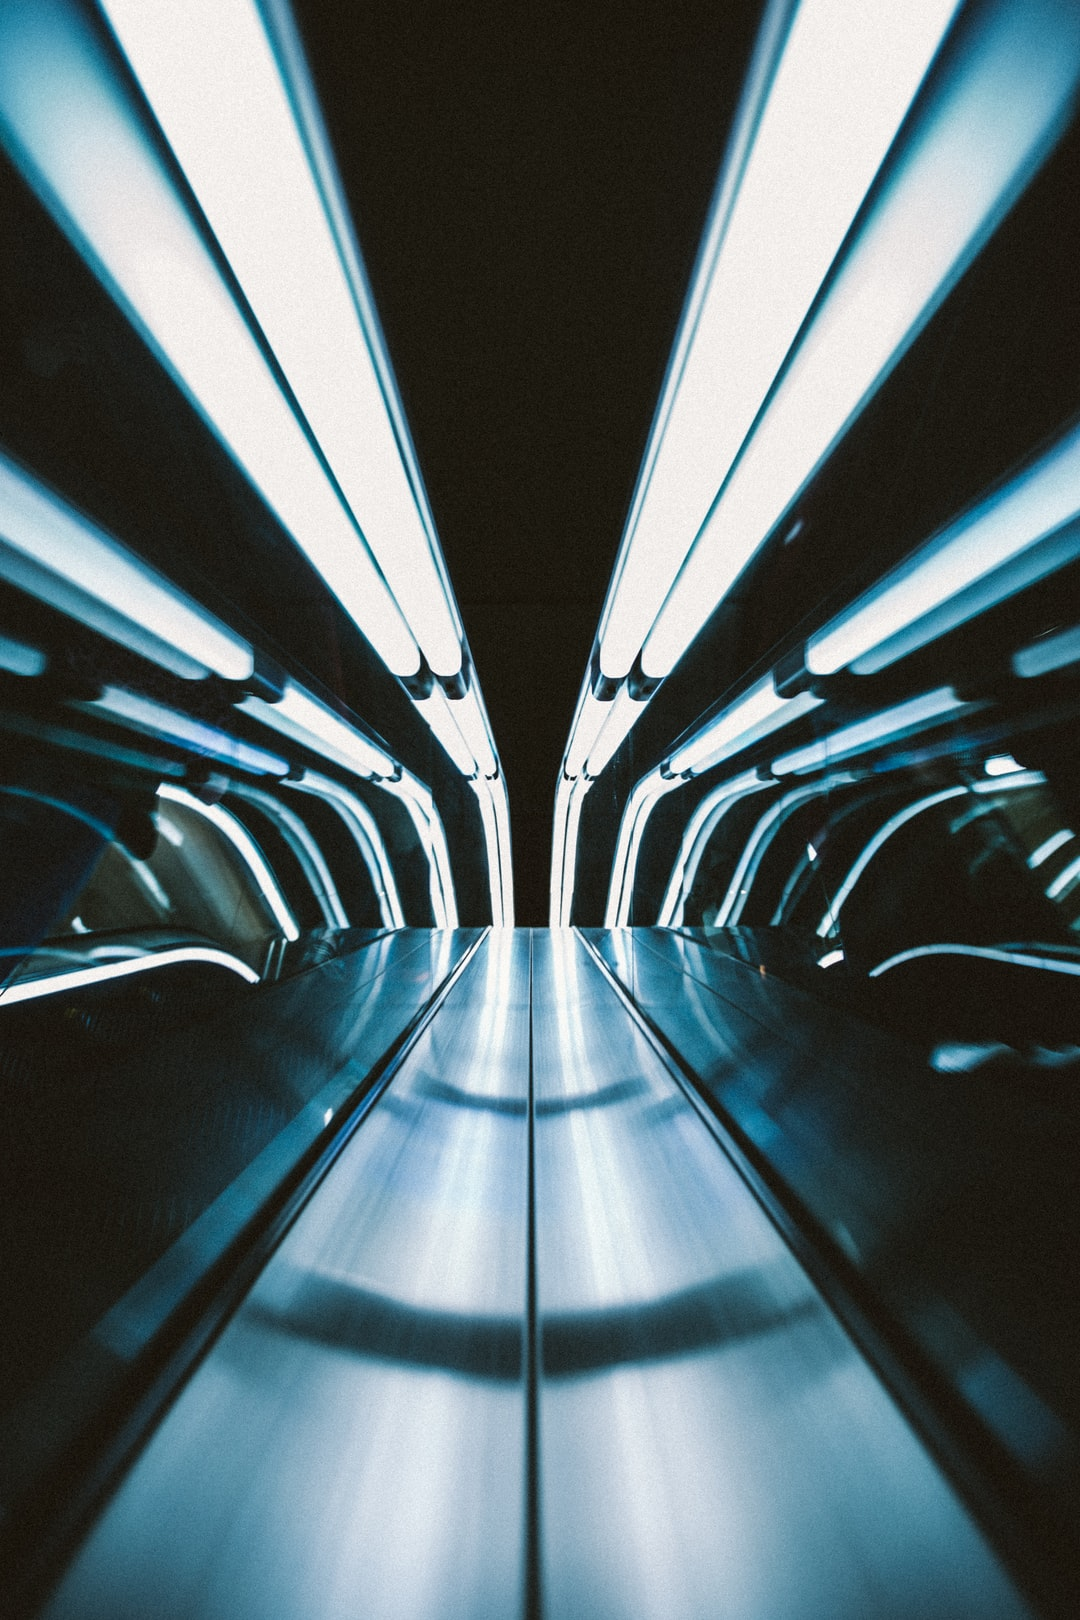 A simple shot taken with my camera centered between the escalator as I was going up.